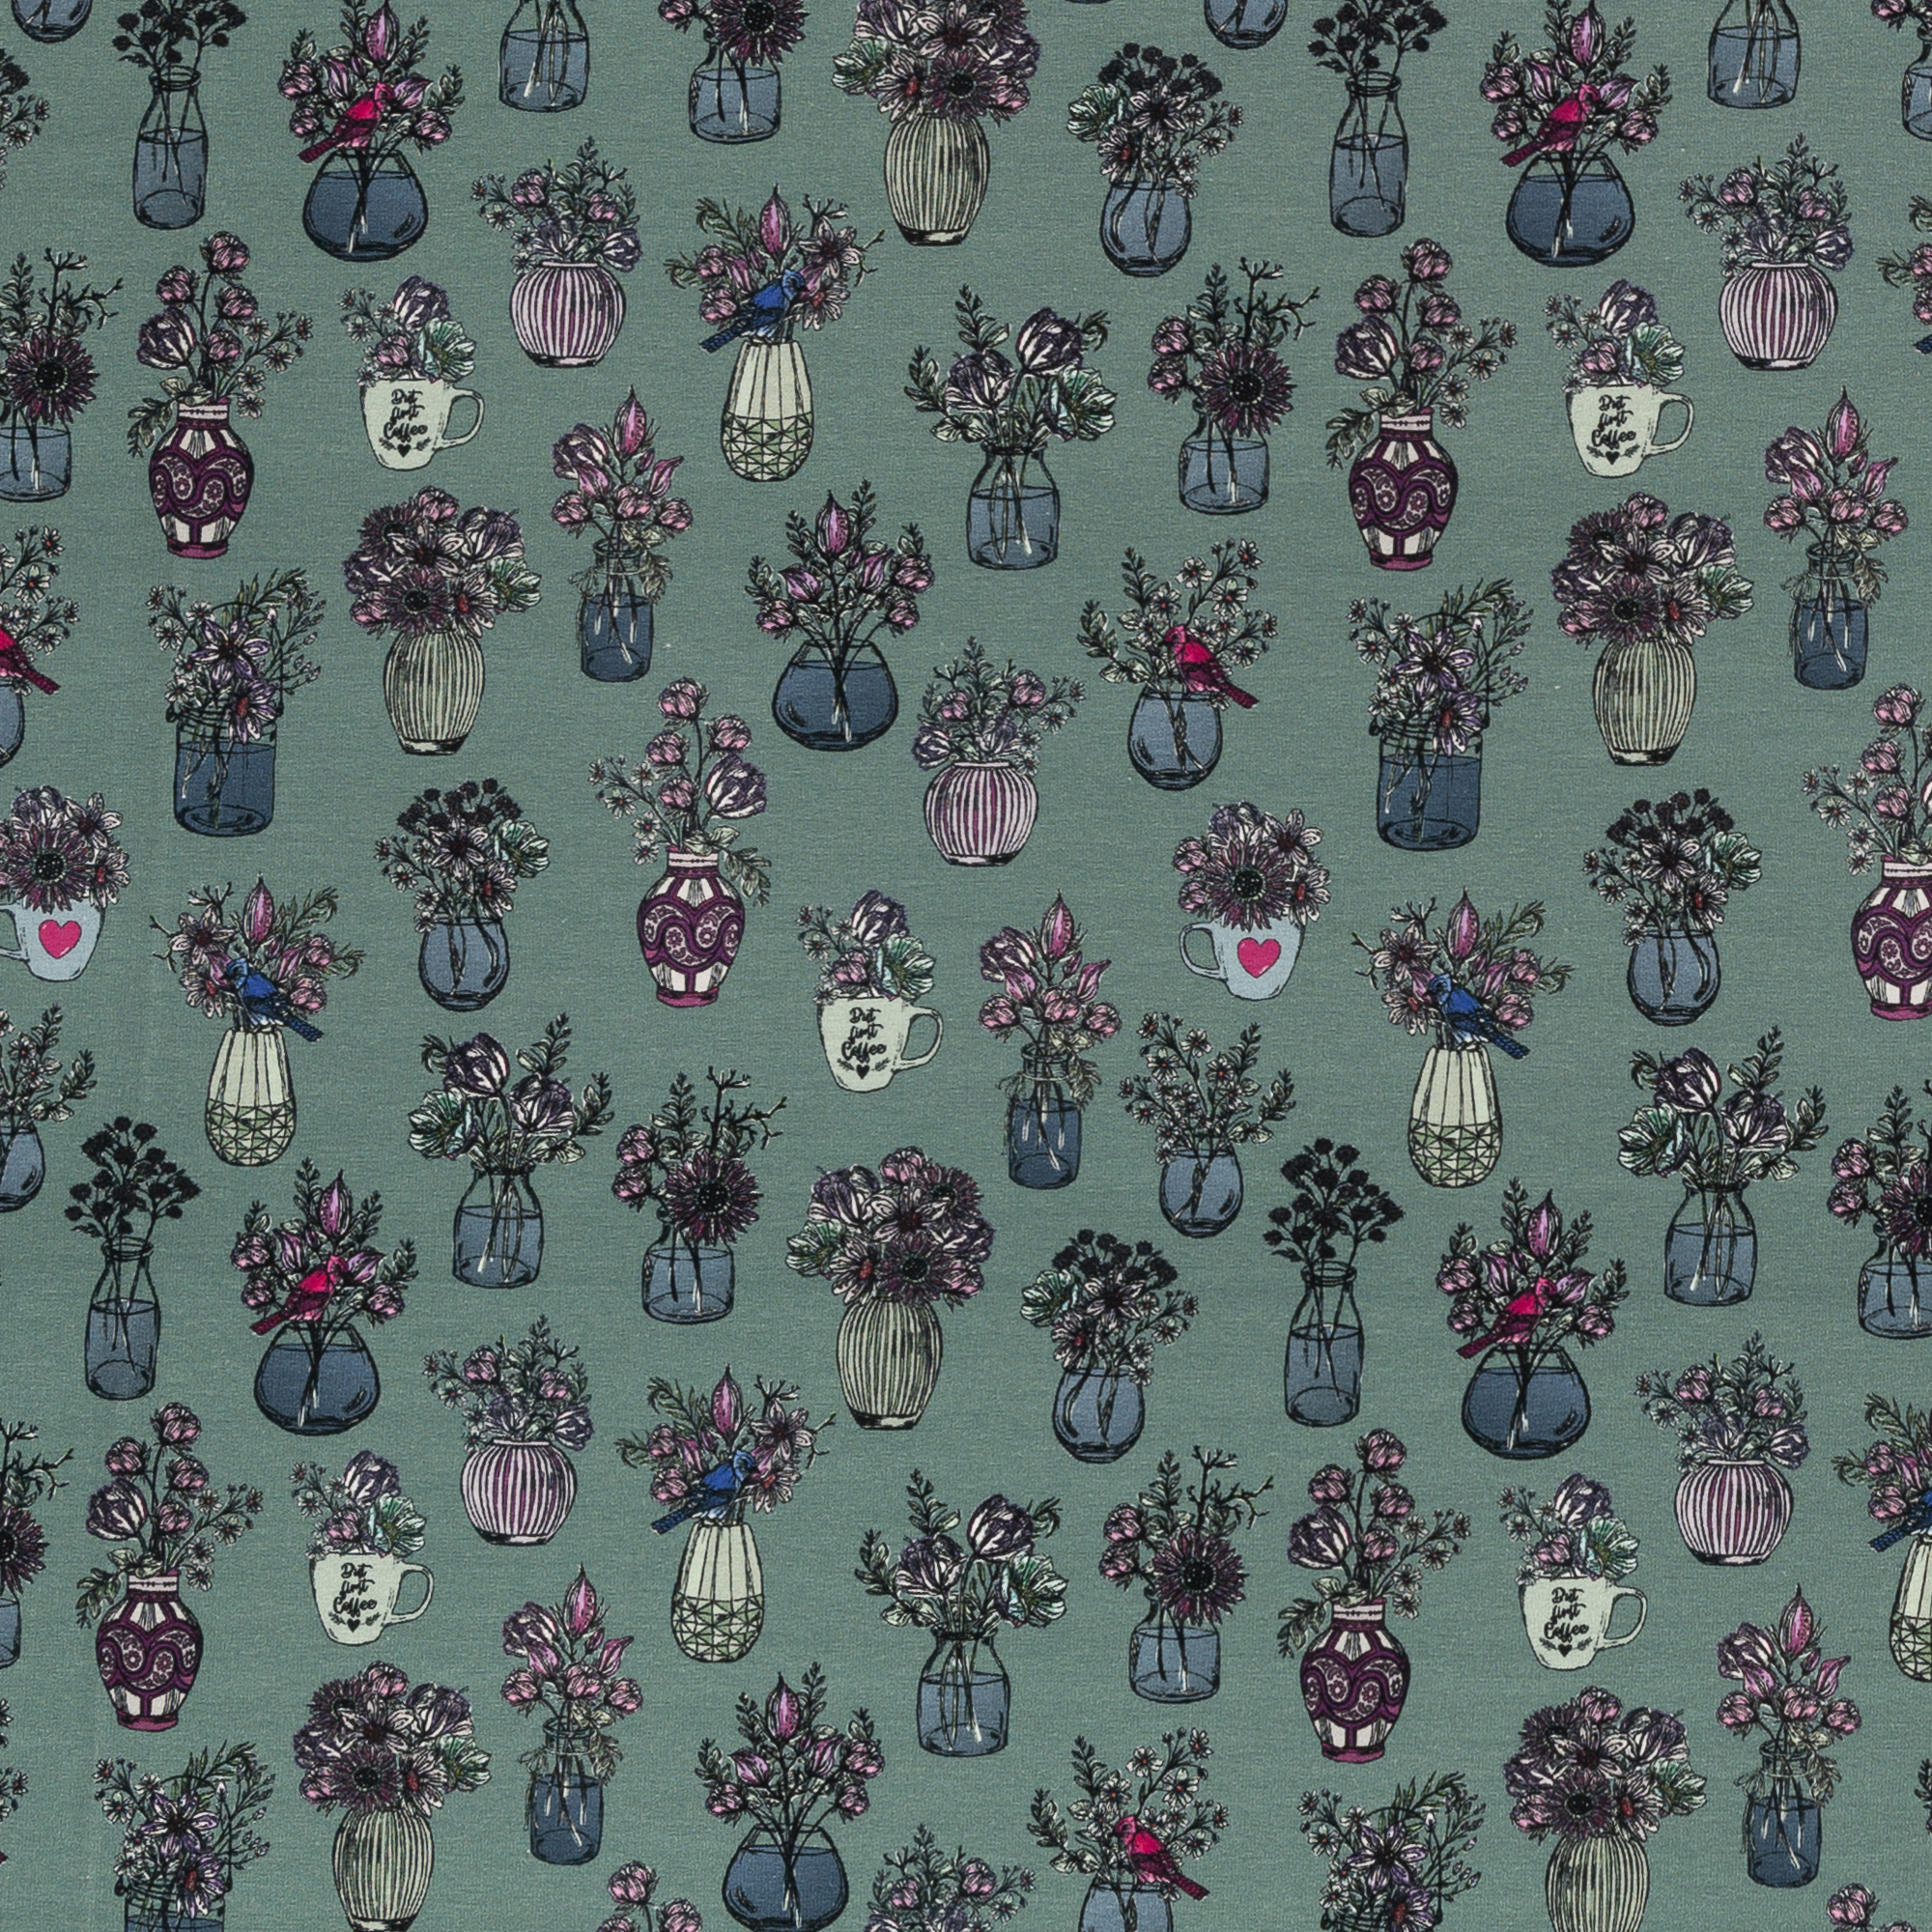 French Terry - Sommersweat - Swafing - All my Flowers by Lila-Lotta - Dusty Mint